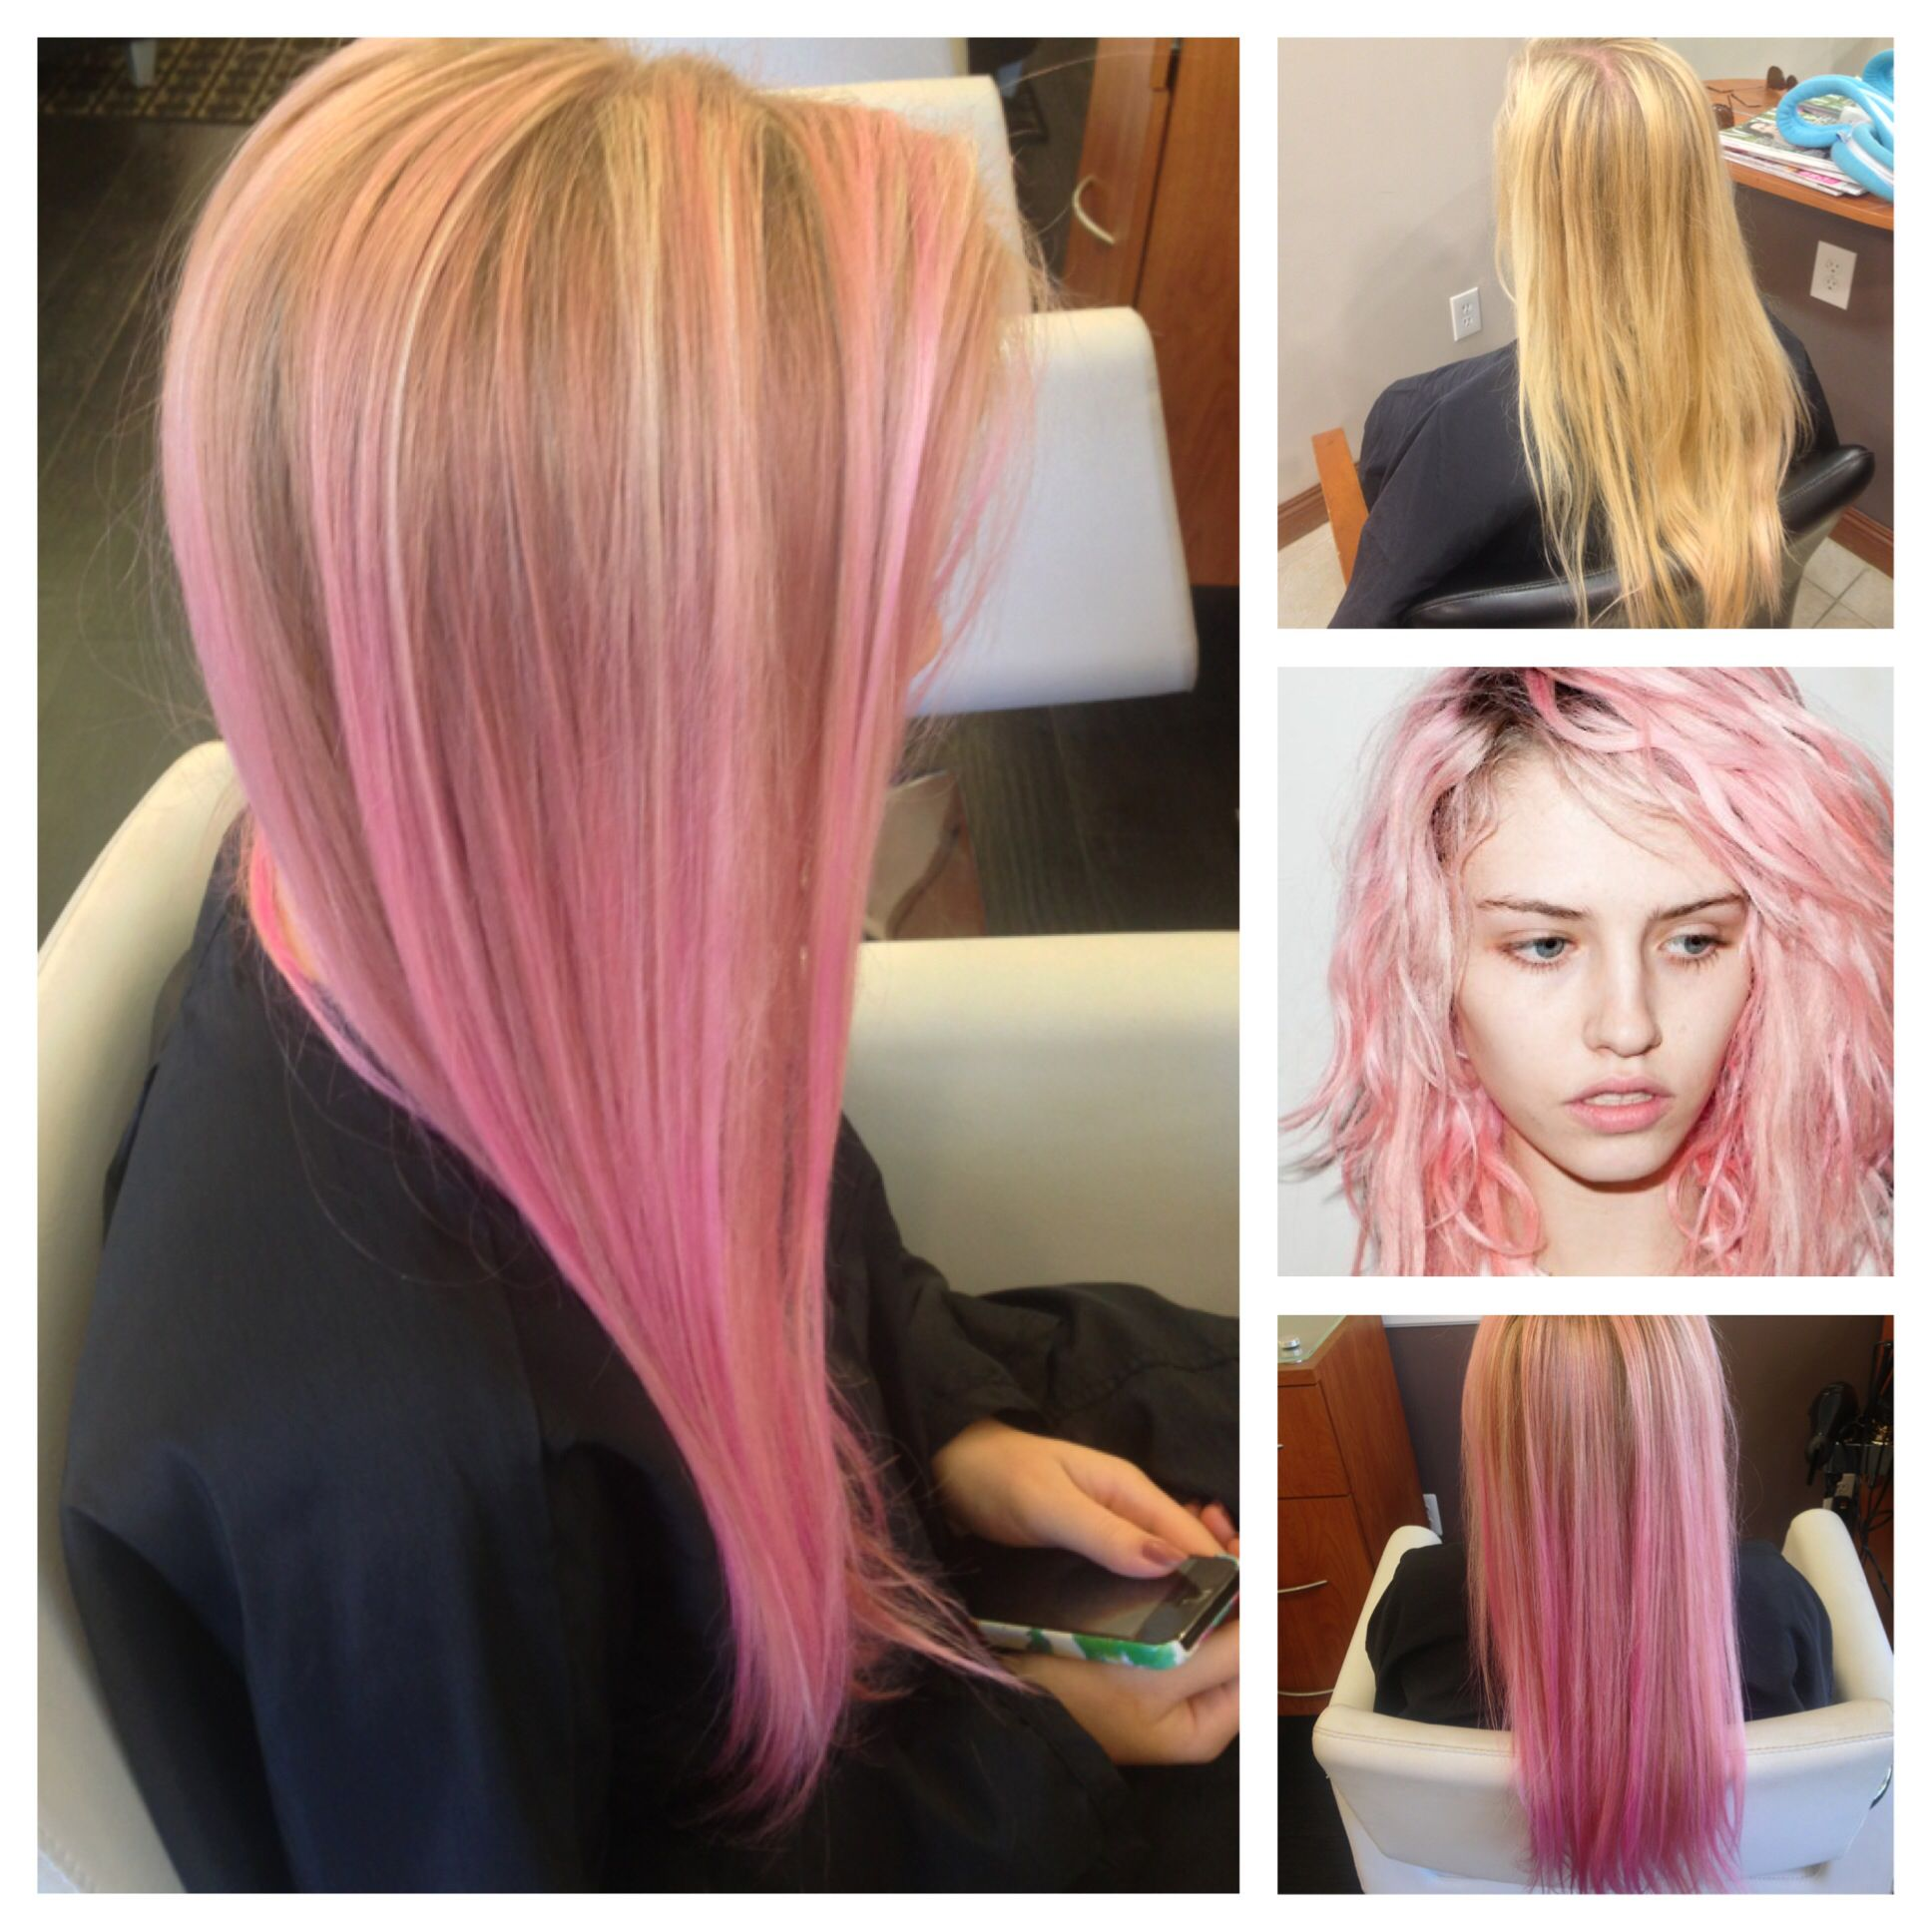 Inspiration Before And The Final Product Pravana Pastel Pink